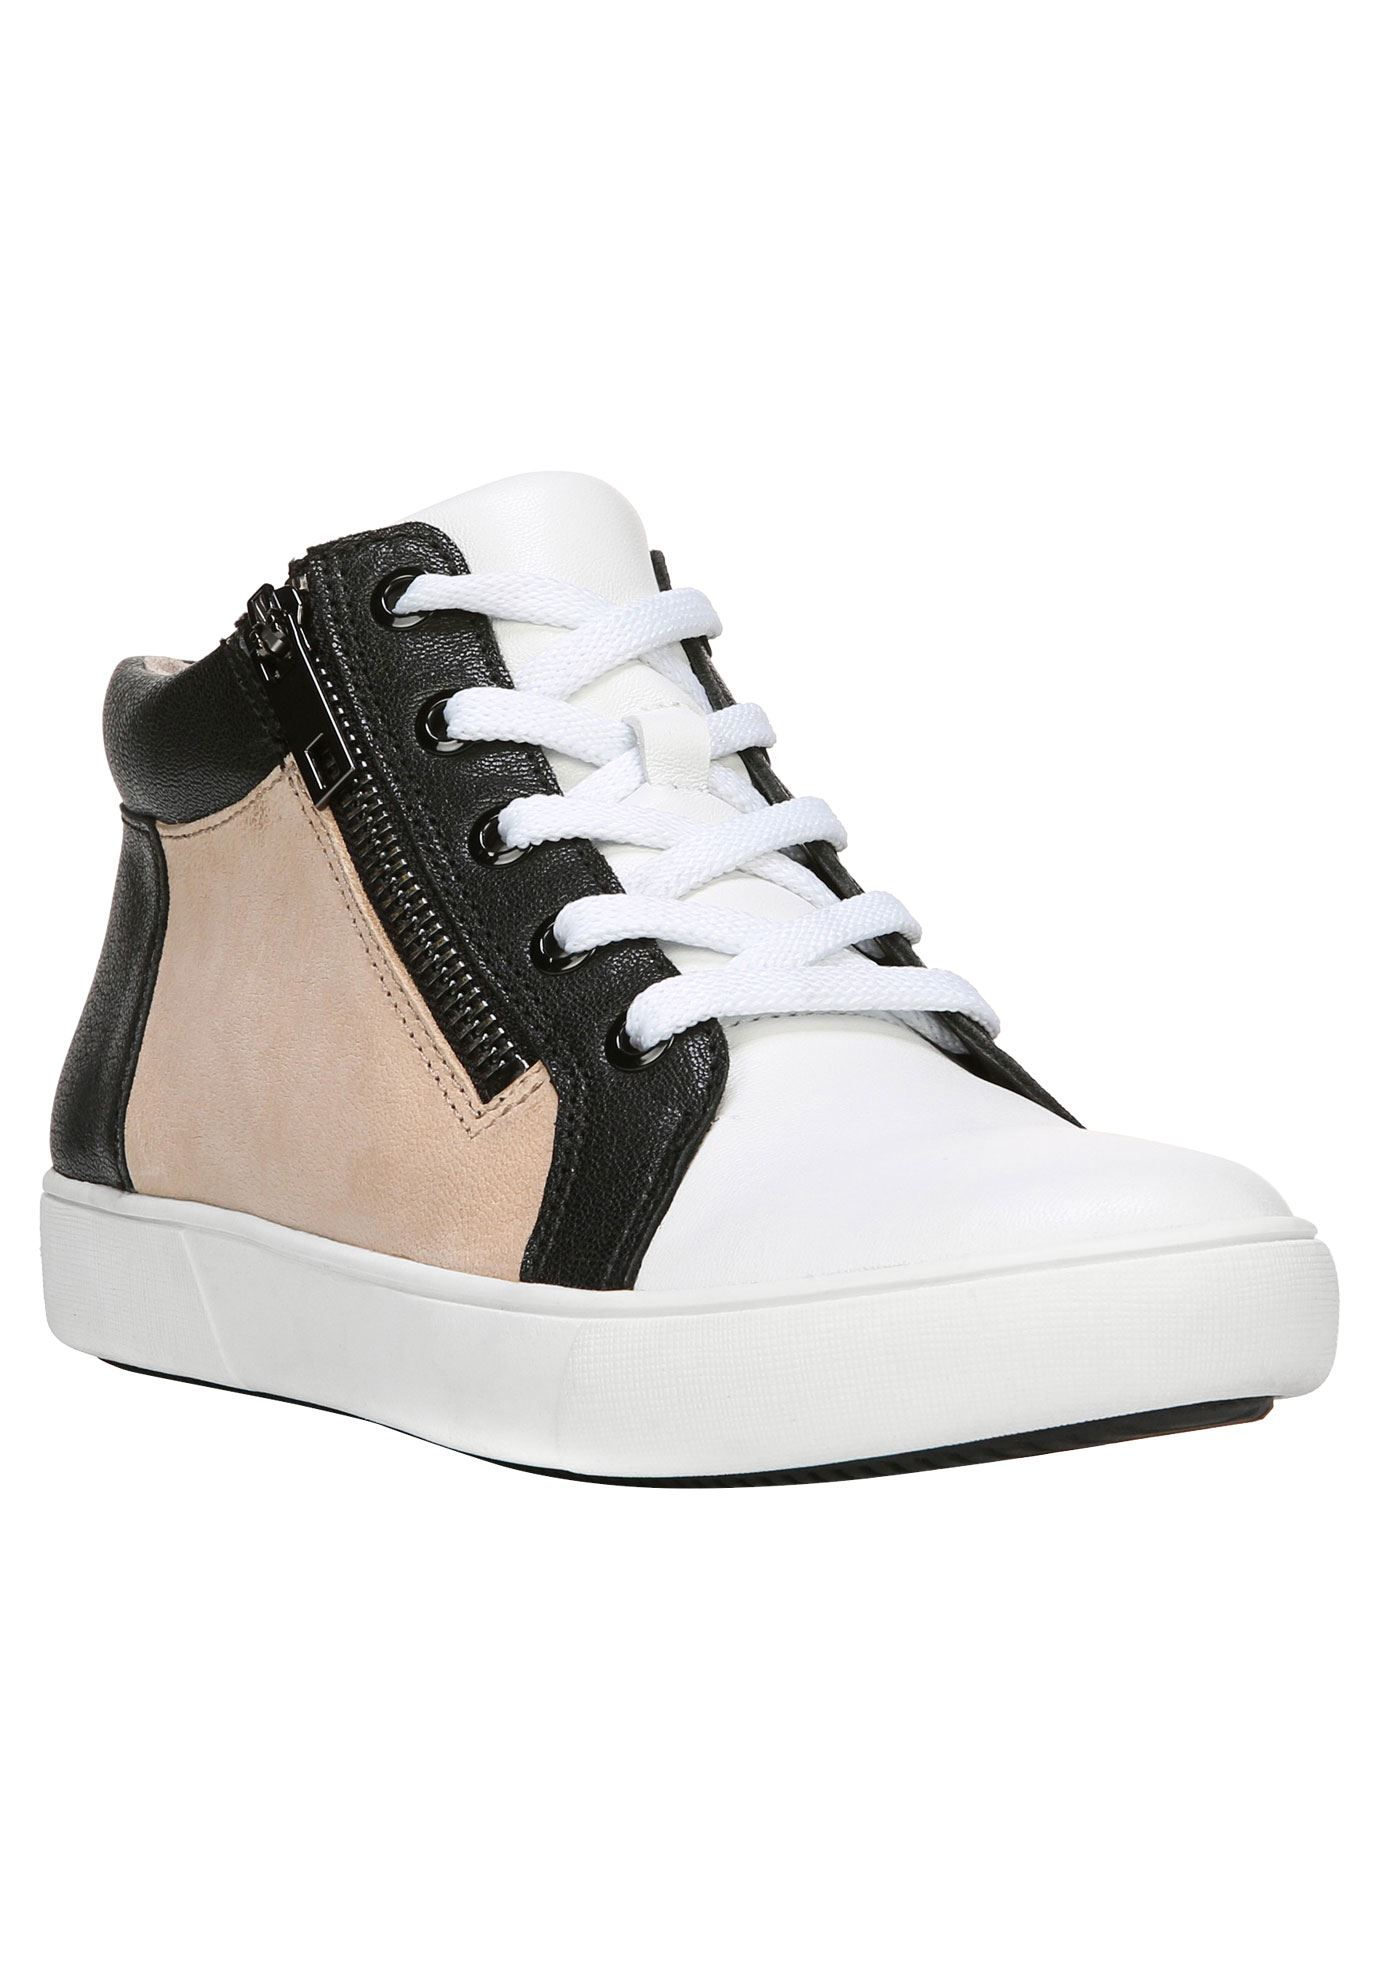 Motley Sneakers by Naturalizer®,